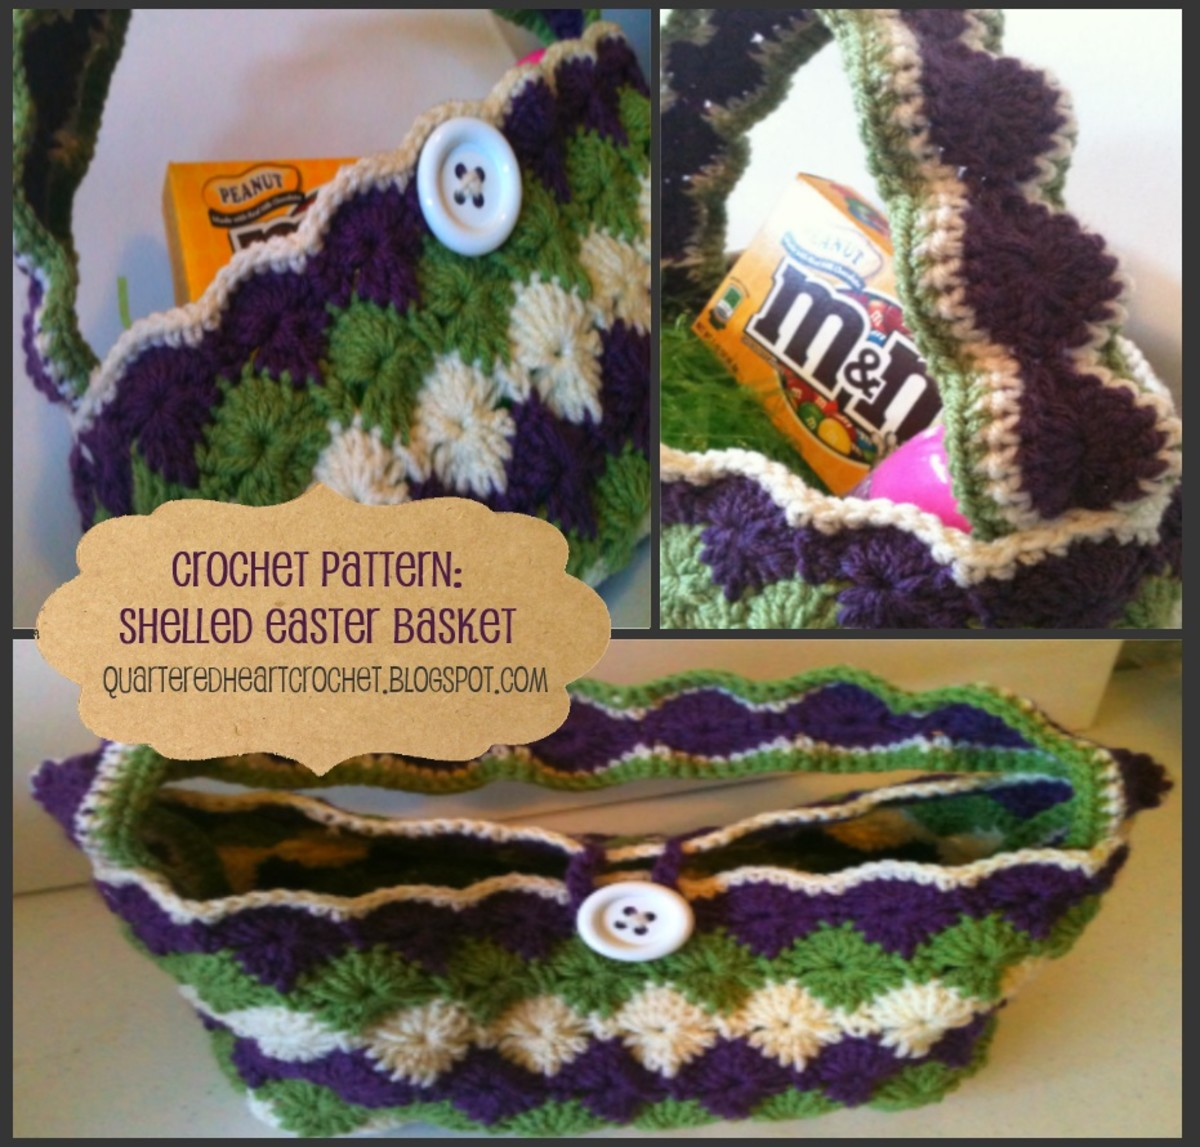 Shelled Crochet Easter Basket Pattern